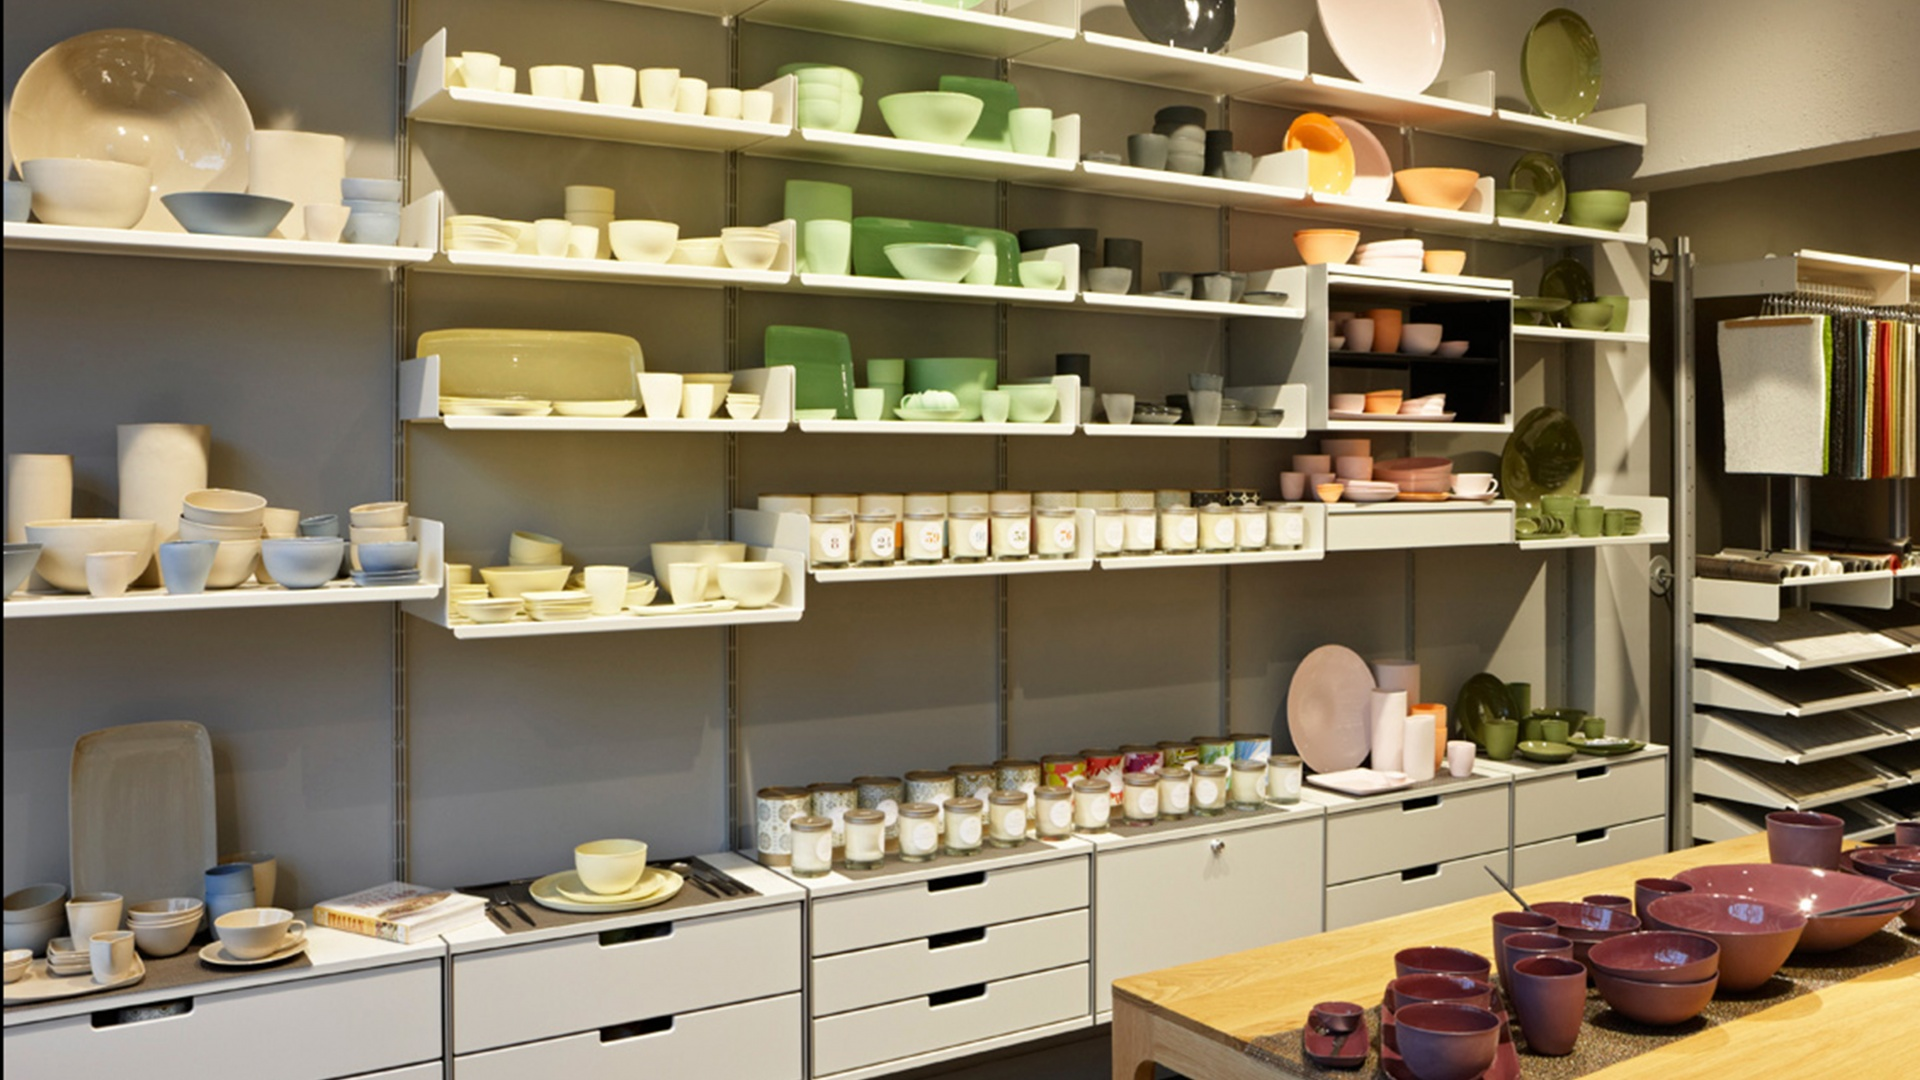 Ceramics on shelves, in drawers and behind doors. Note fabric samples on hanging rails and mats on sloping shelves. Versatile shop-fitting